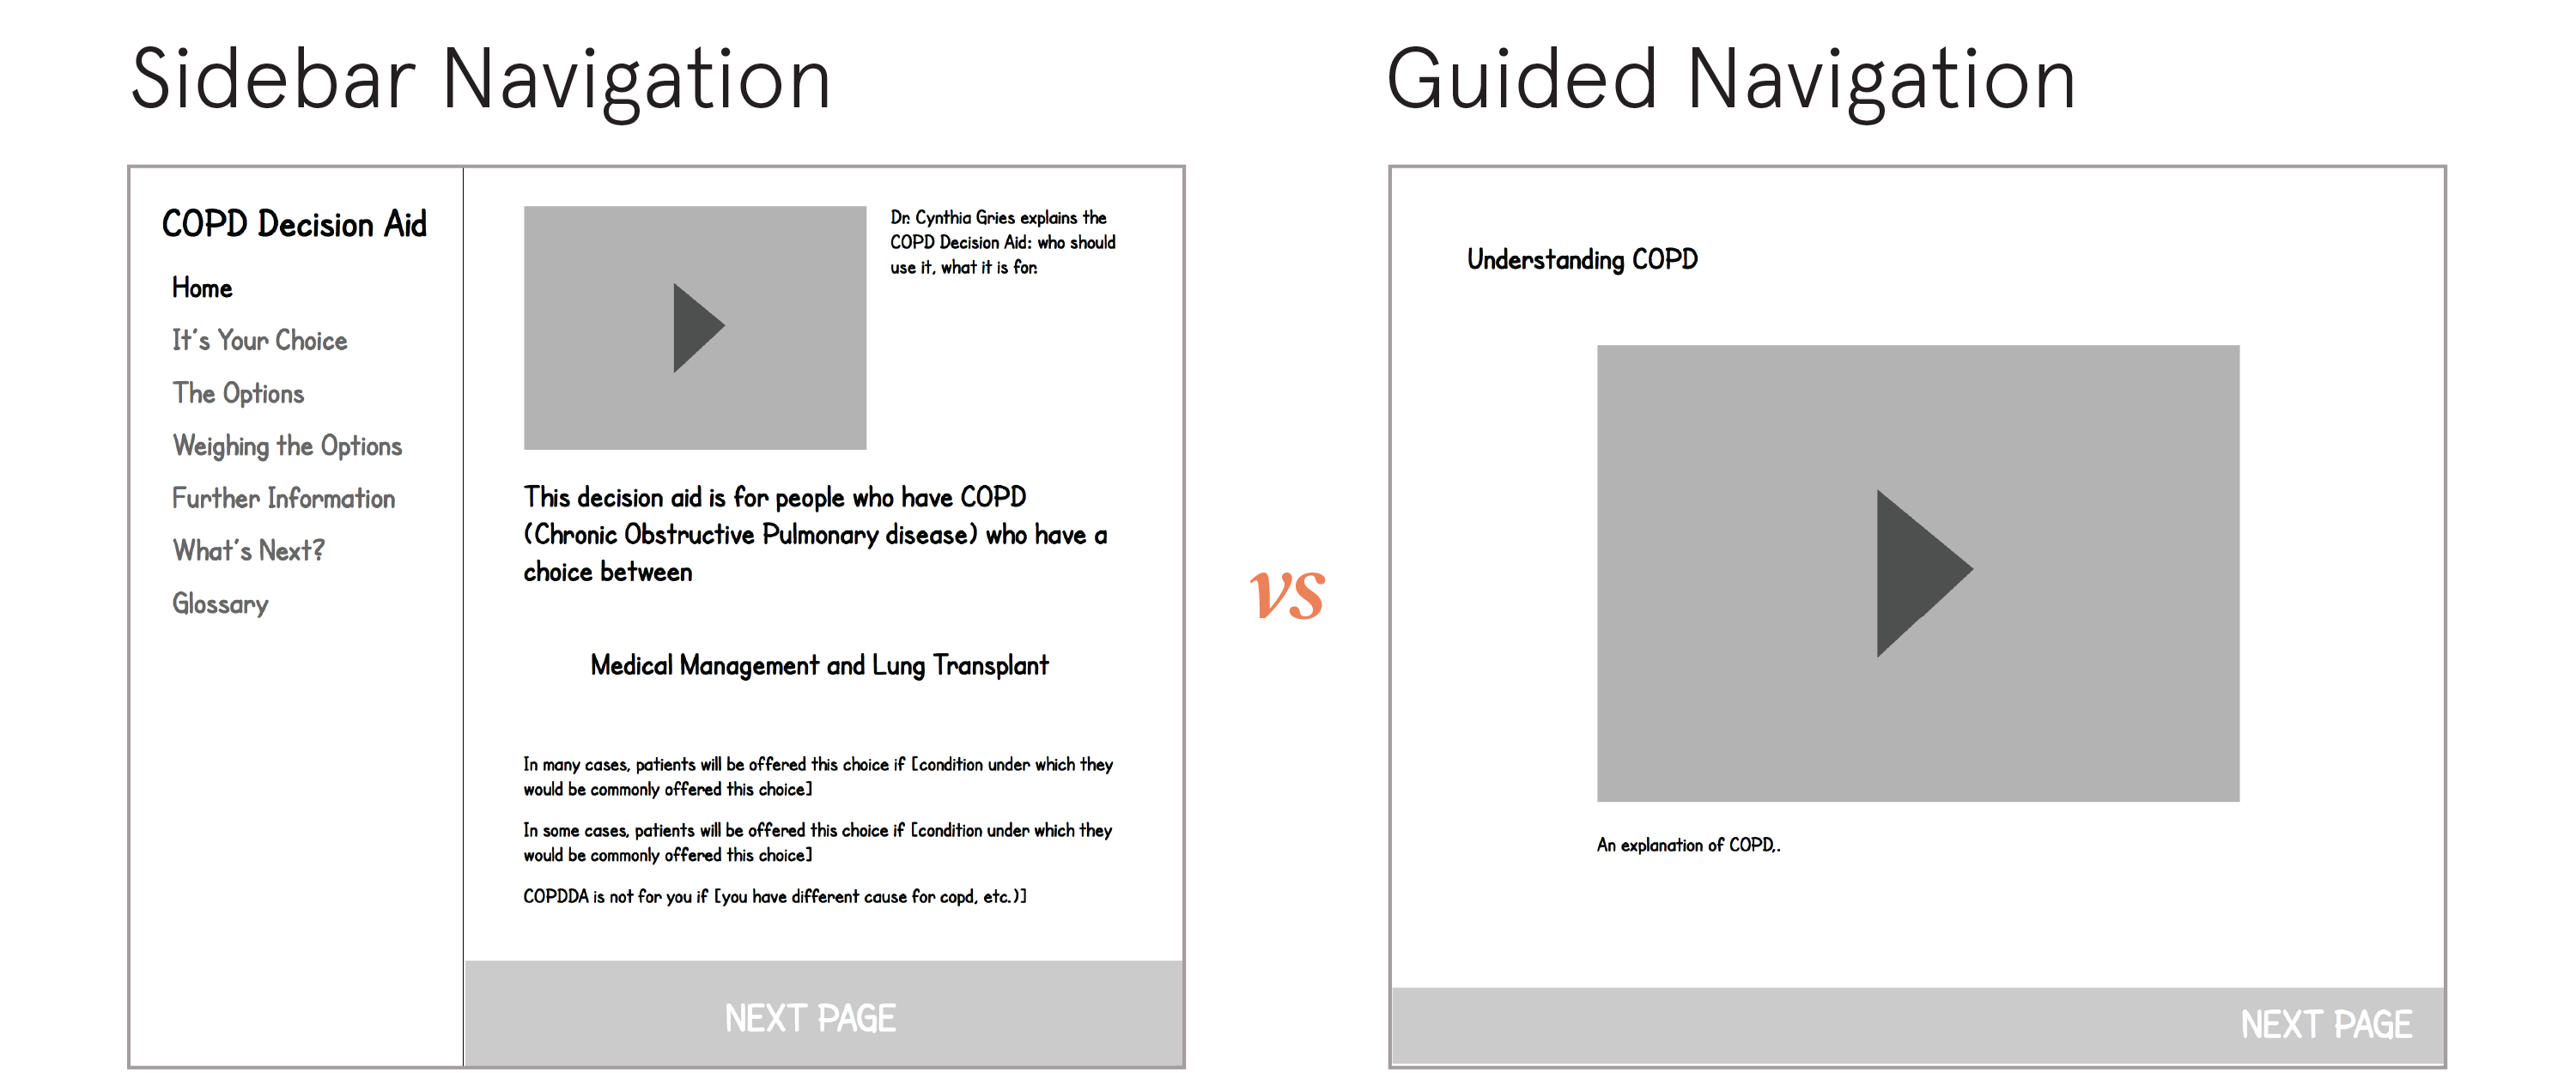 Sidebar vs Guided Navigation